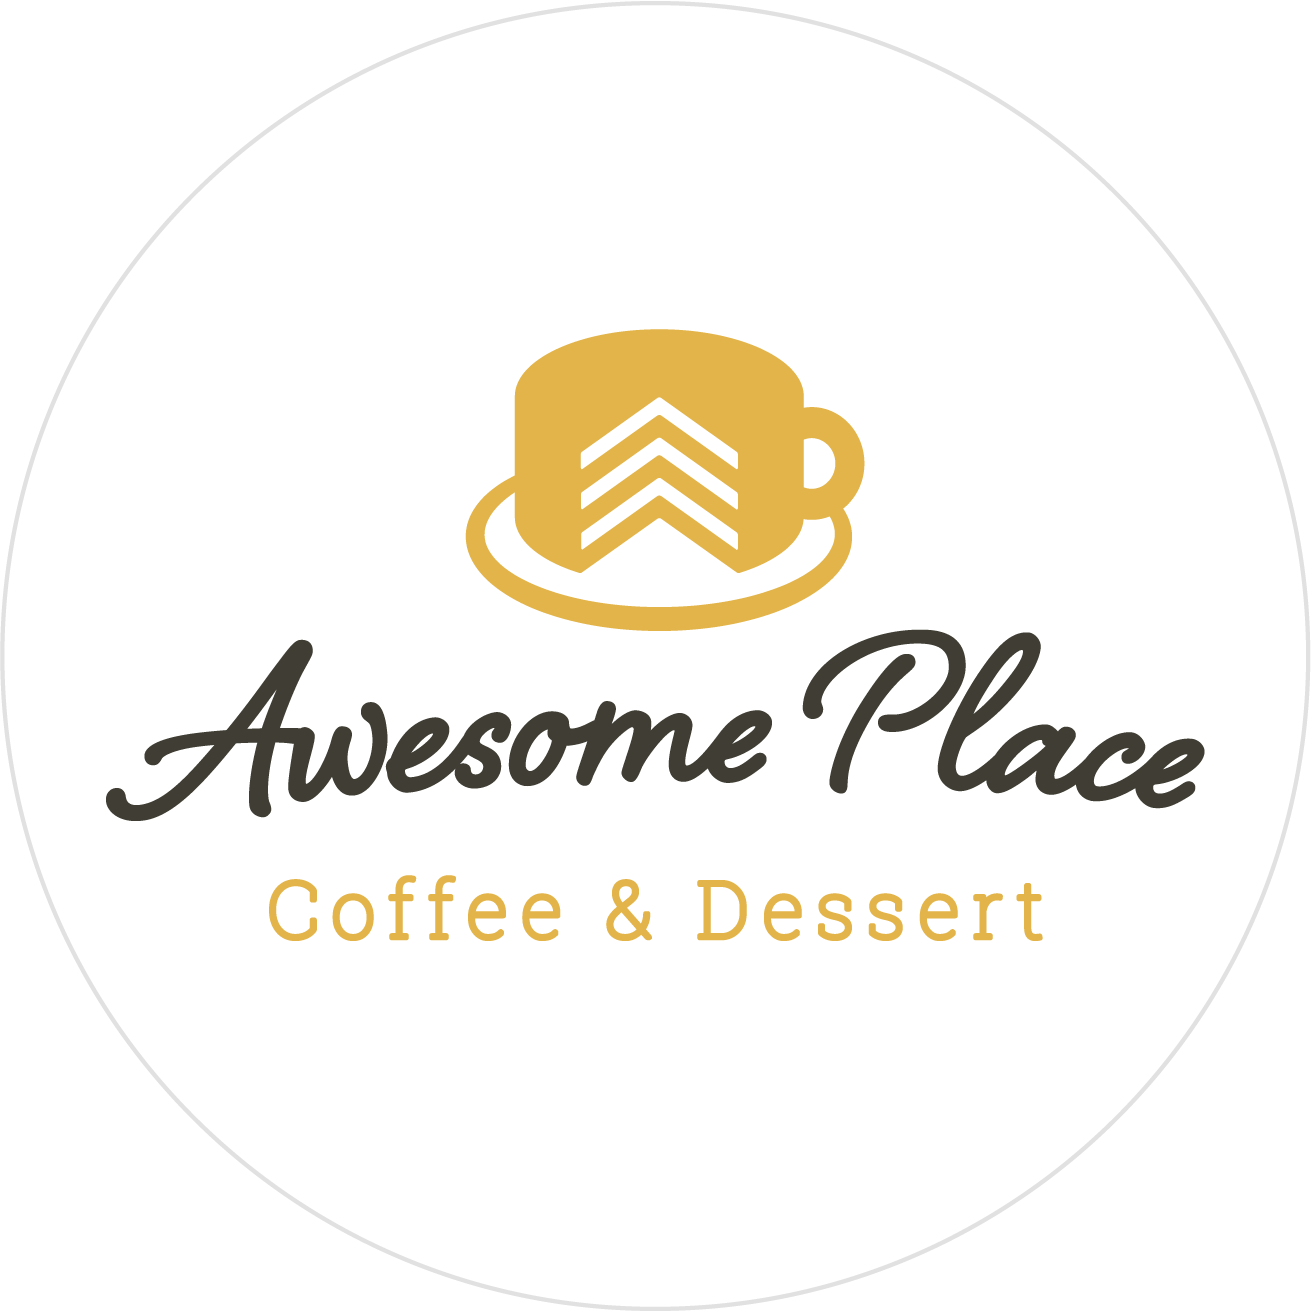 Awesome Place Coffee & Dessert